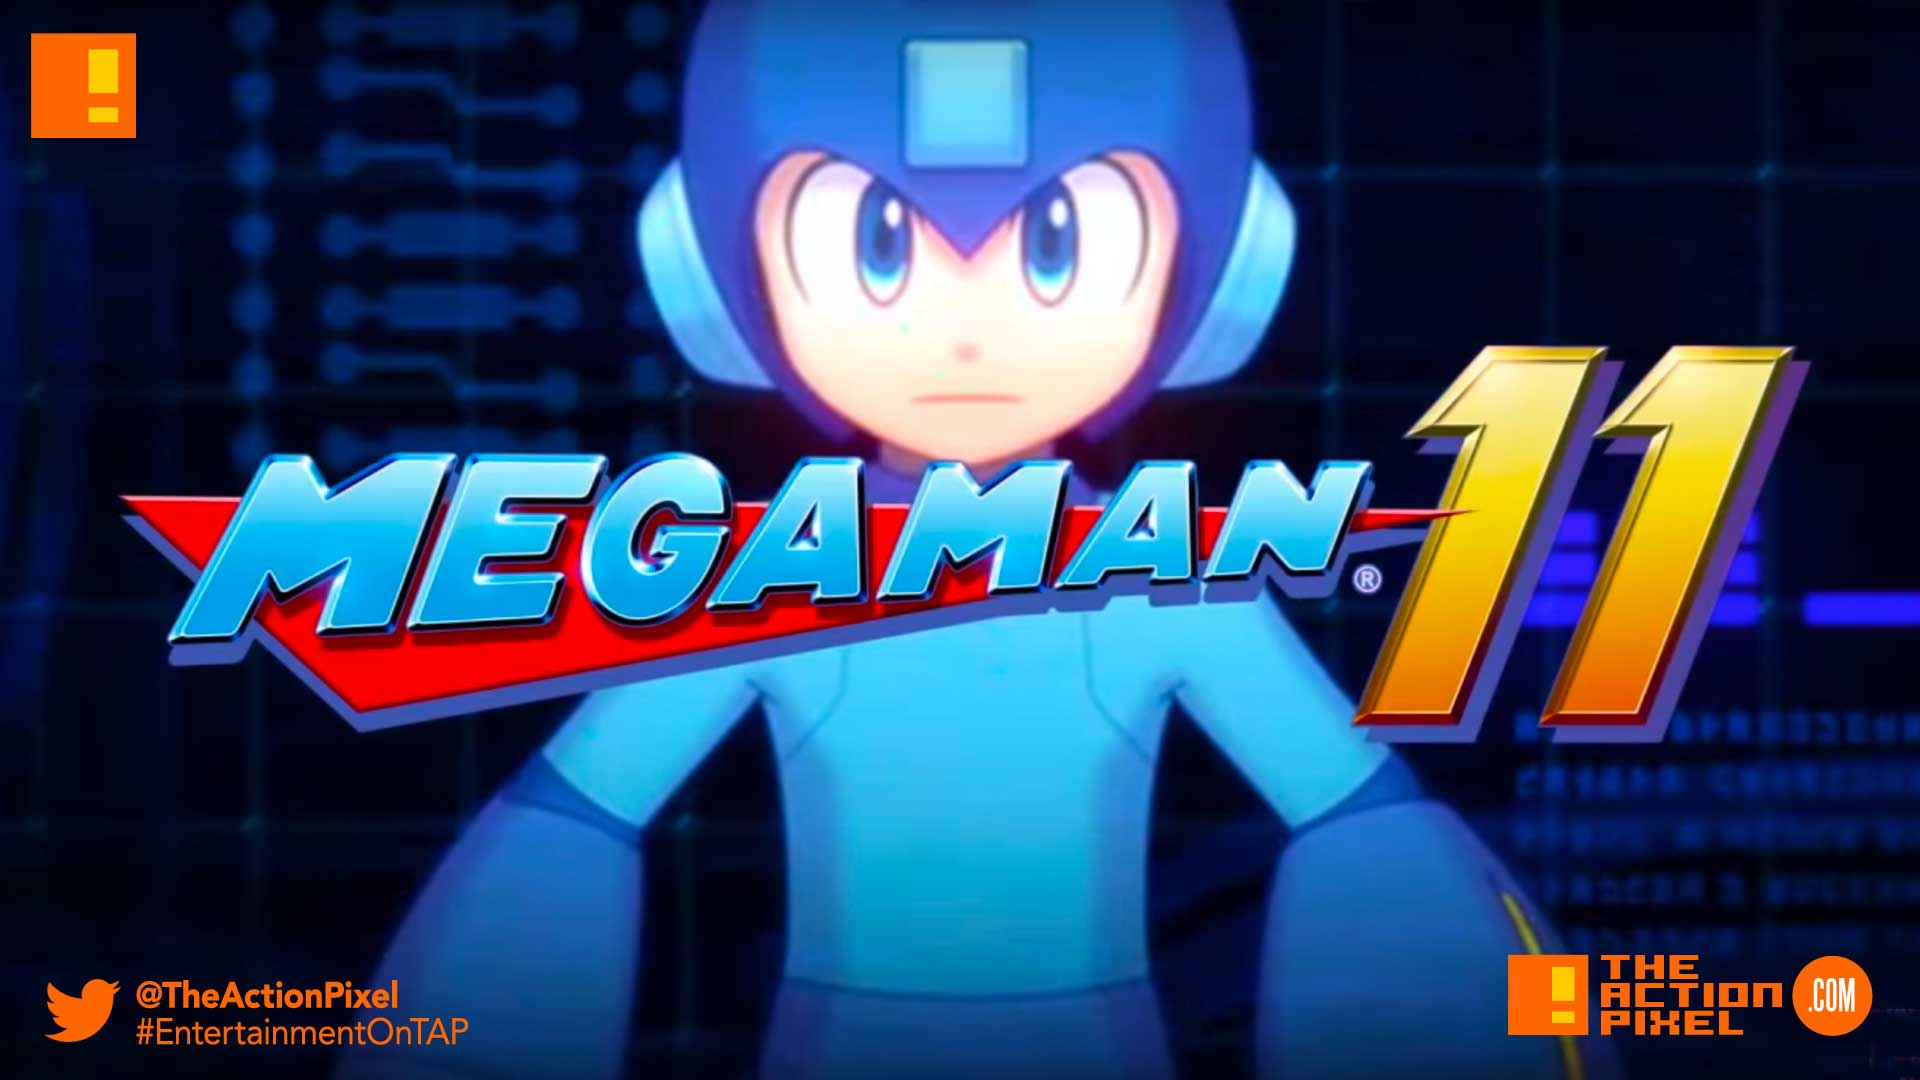 mega man 11, mega man, the action pixel, nintendo, nintendo switch, capcom ,